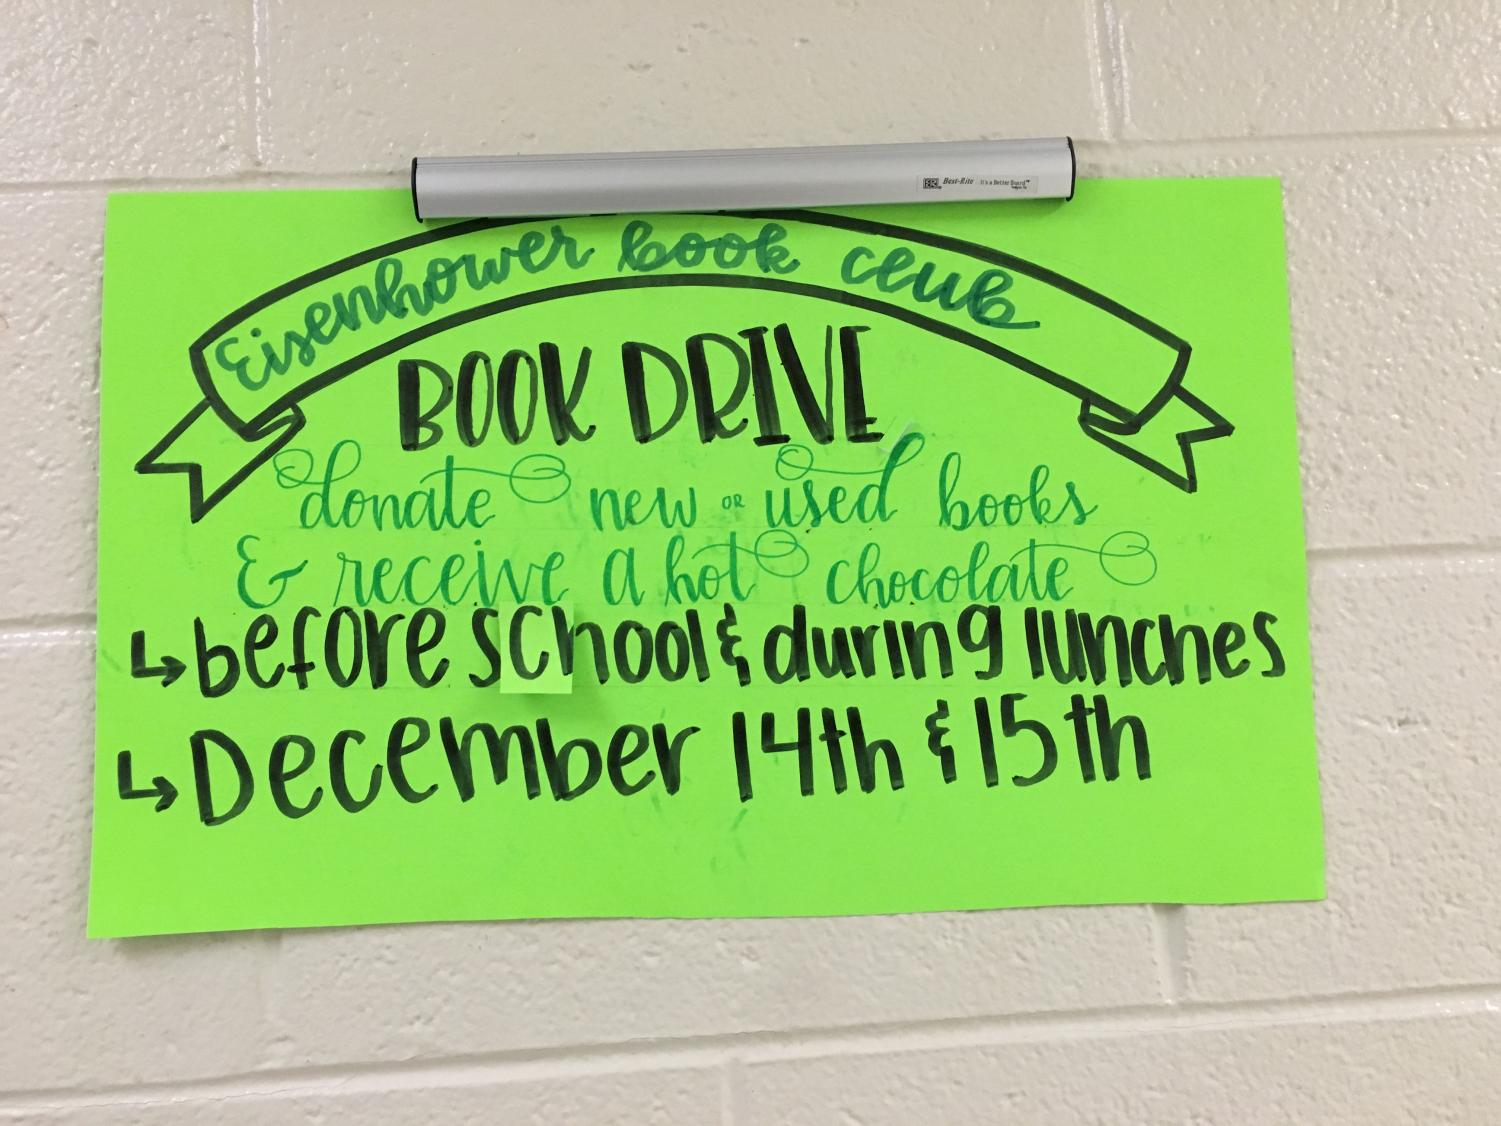 A poster is hung up in hallway to advertise the book donation.